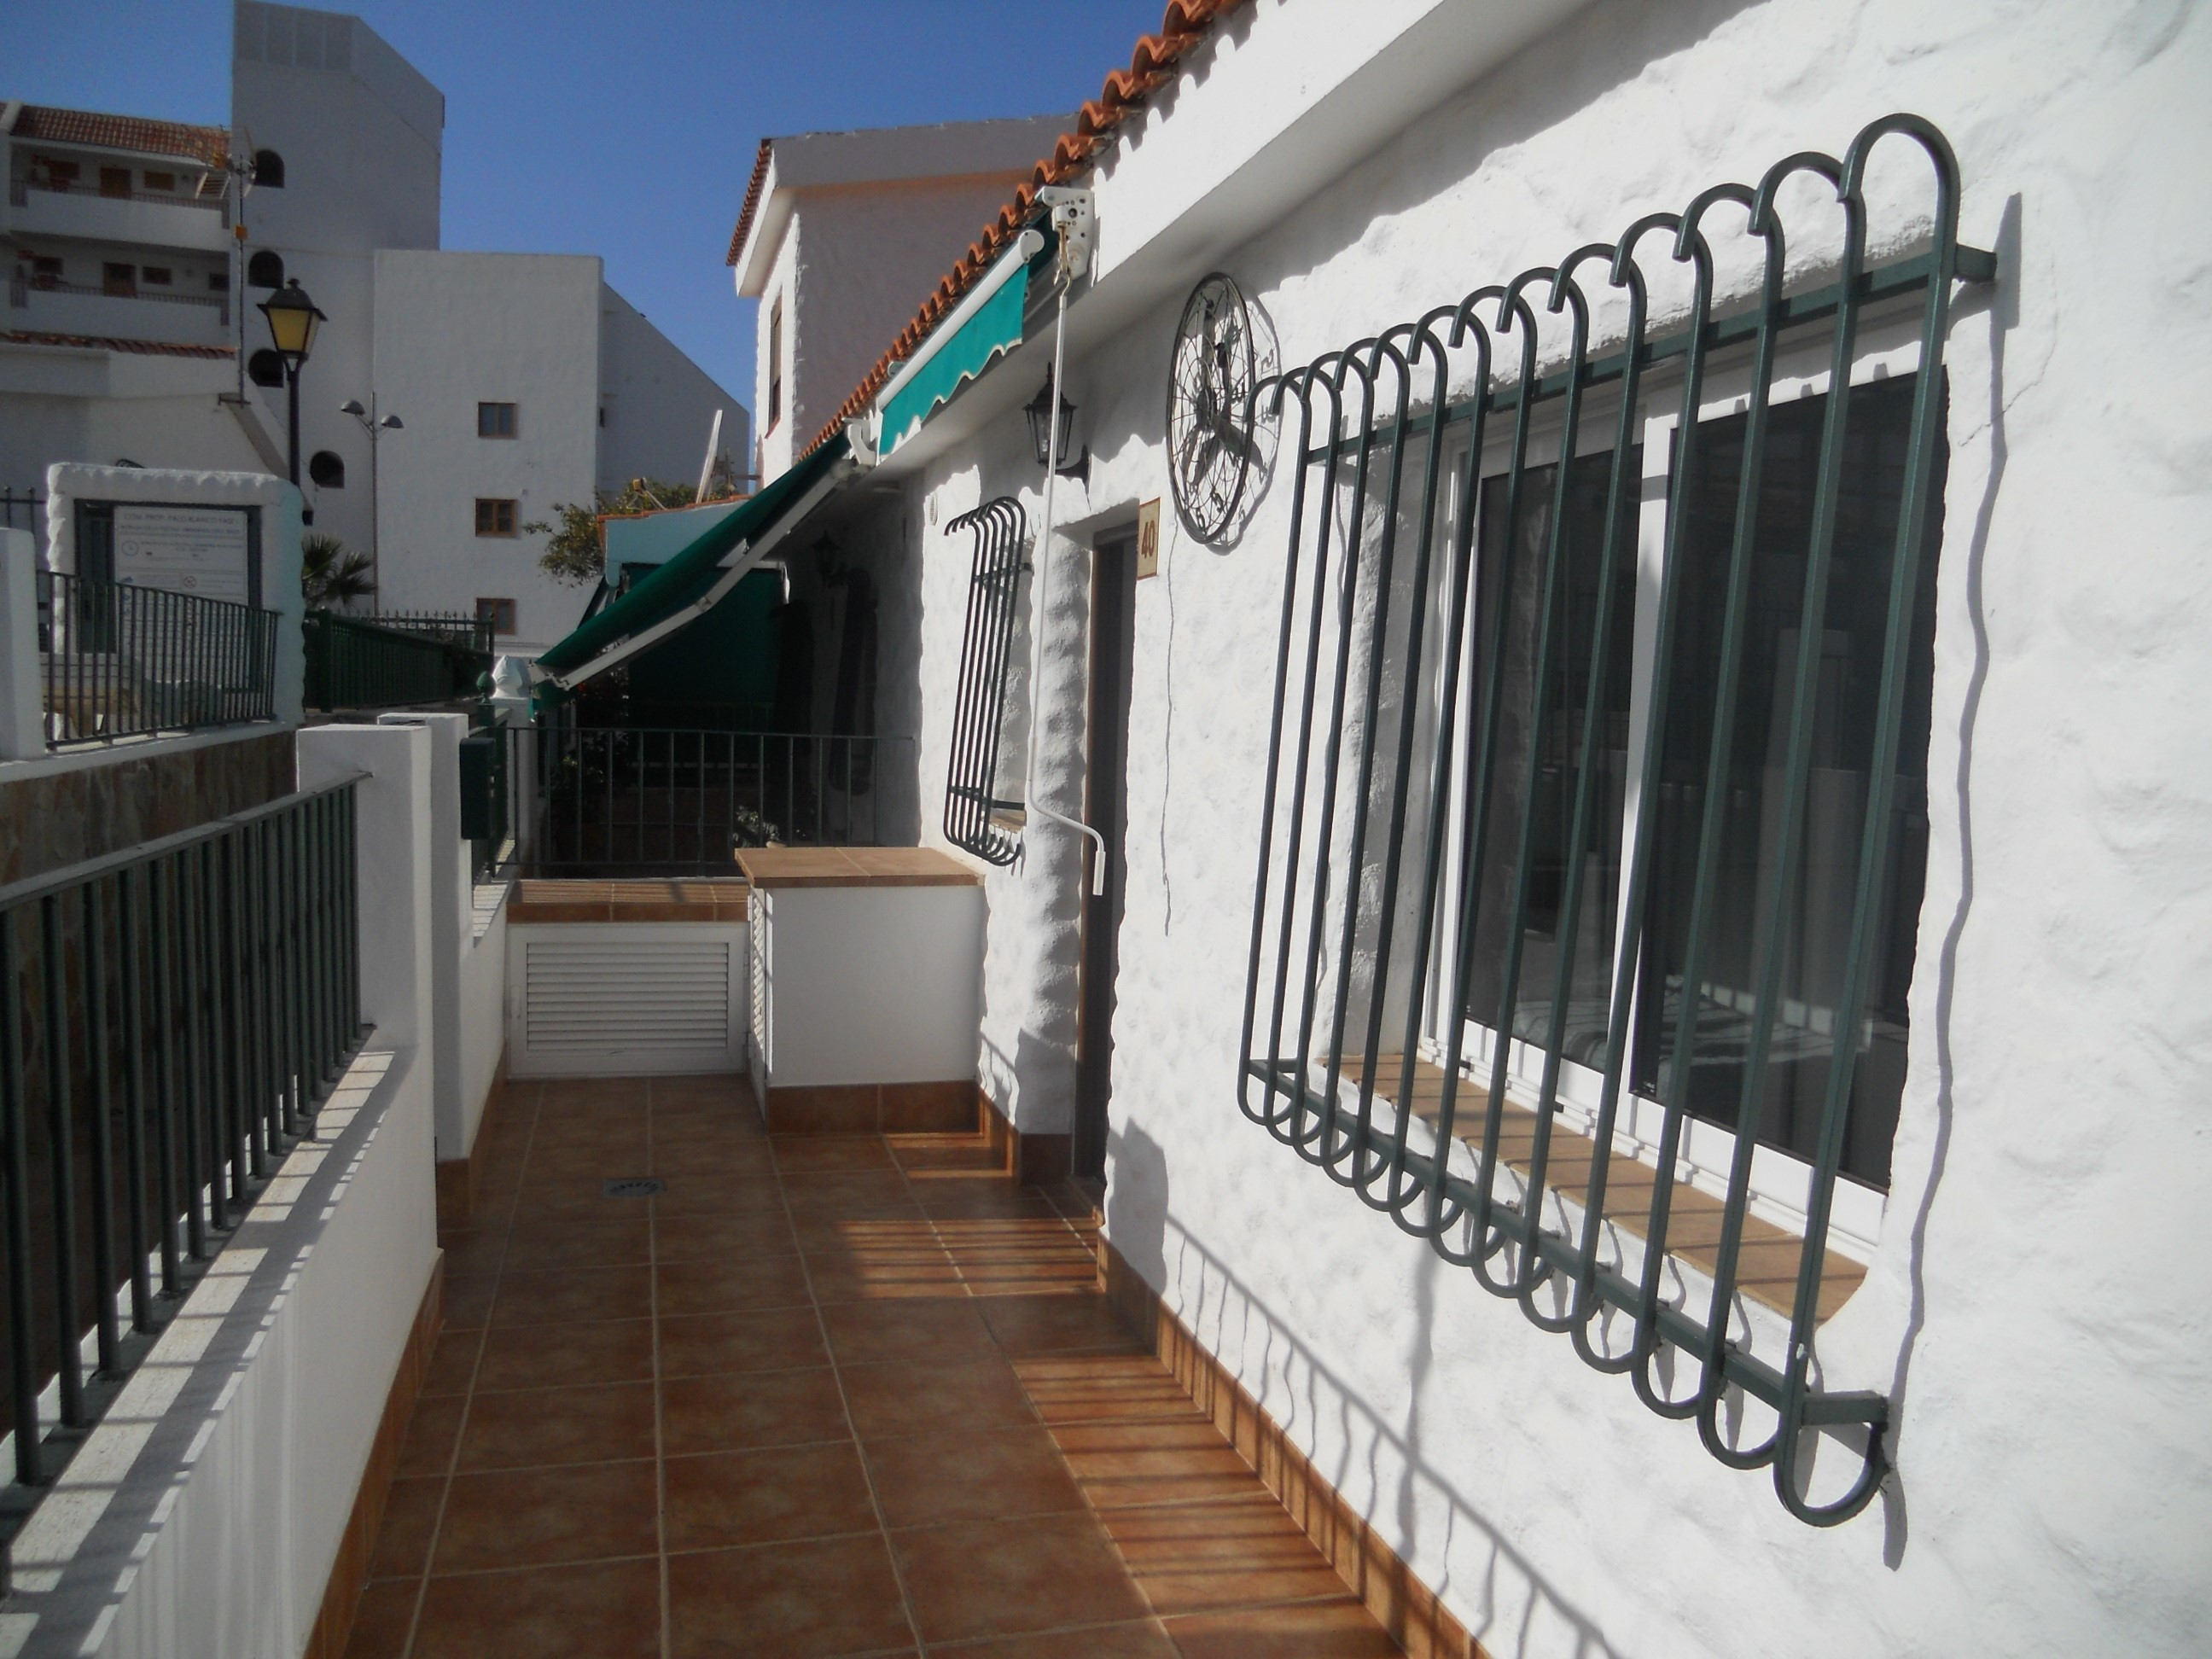 San Eugenio Bajo 2 Bed Bungalow For Sale, Tenerife